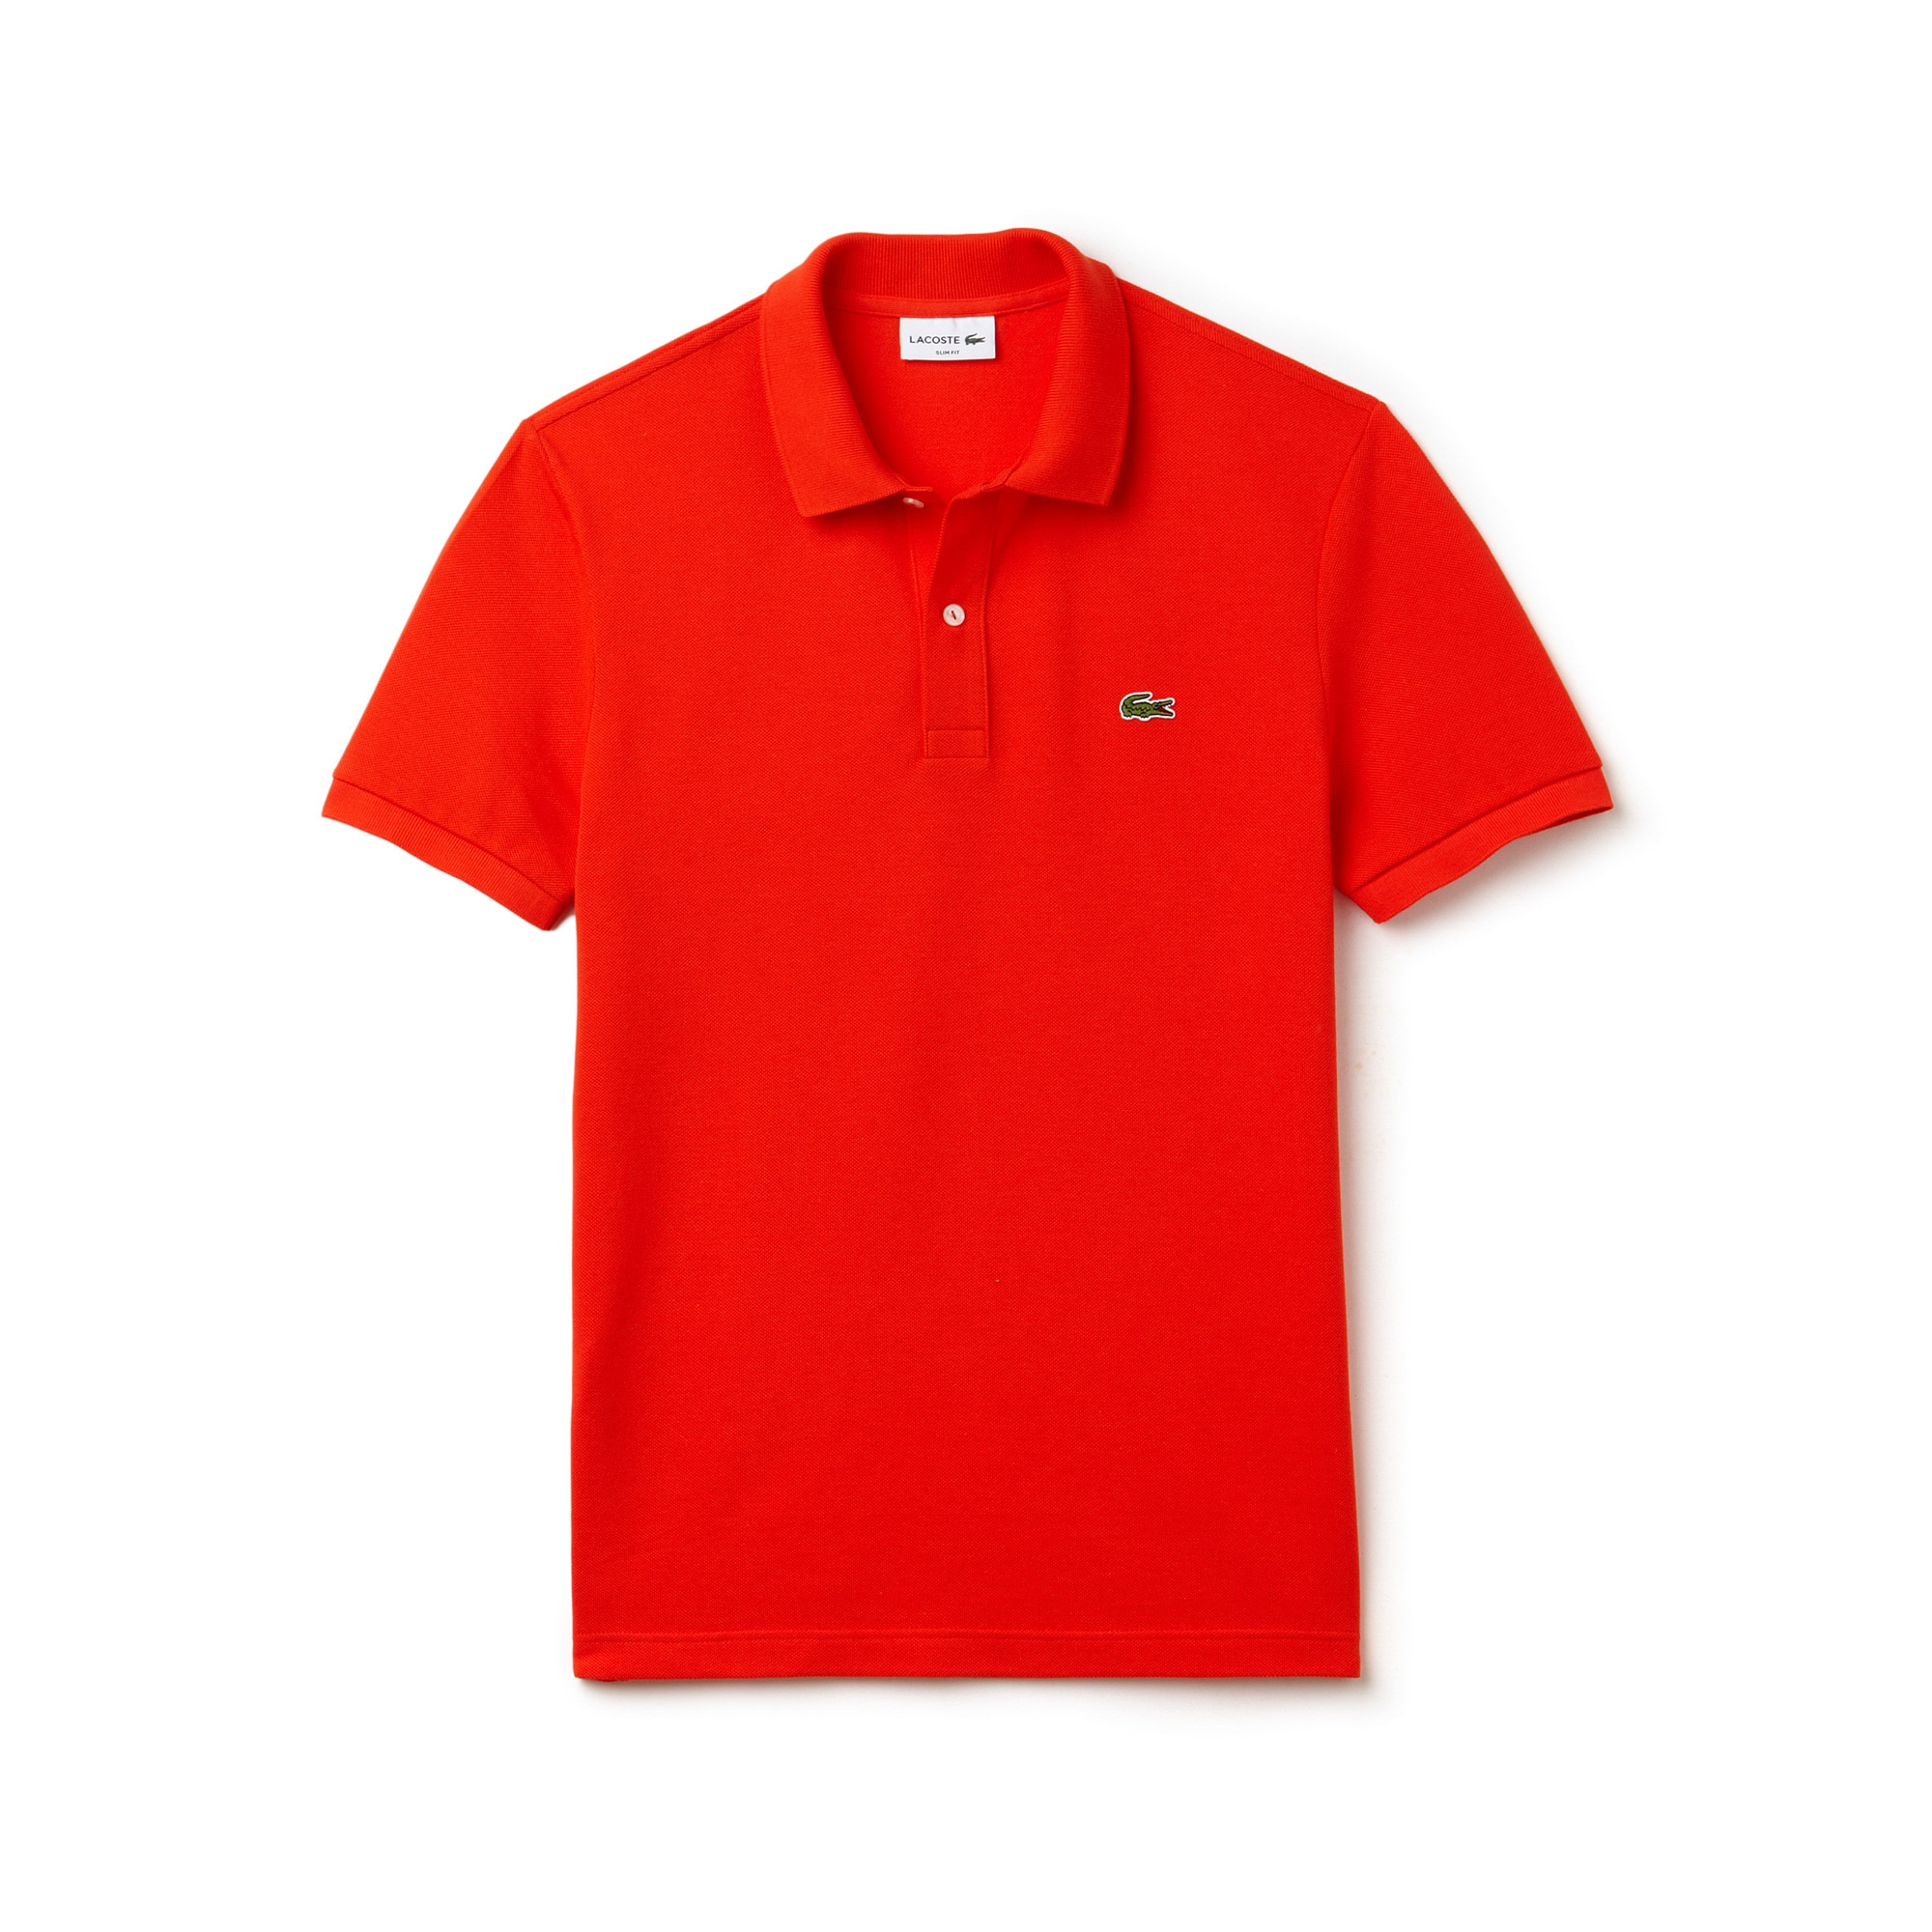 30%. Personnaliser Personnaliser. Polo Lacoste ... 5f8f7baa2133